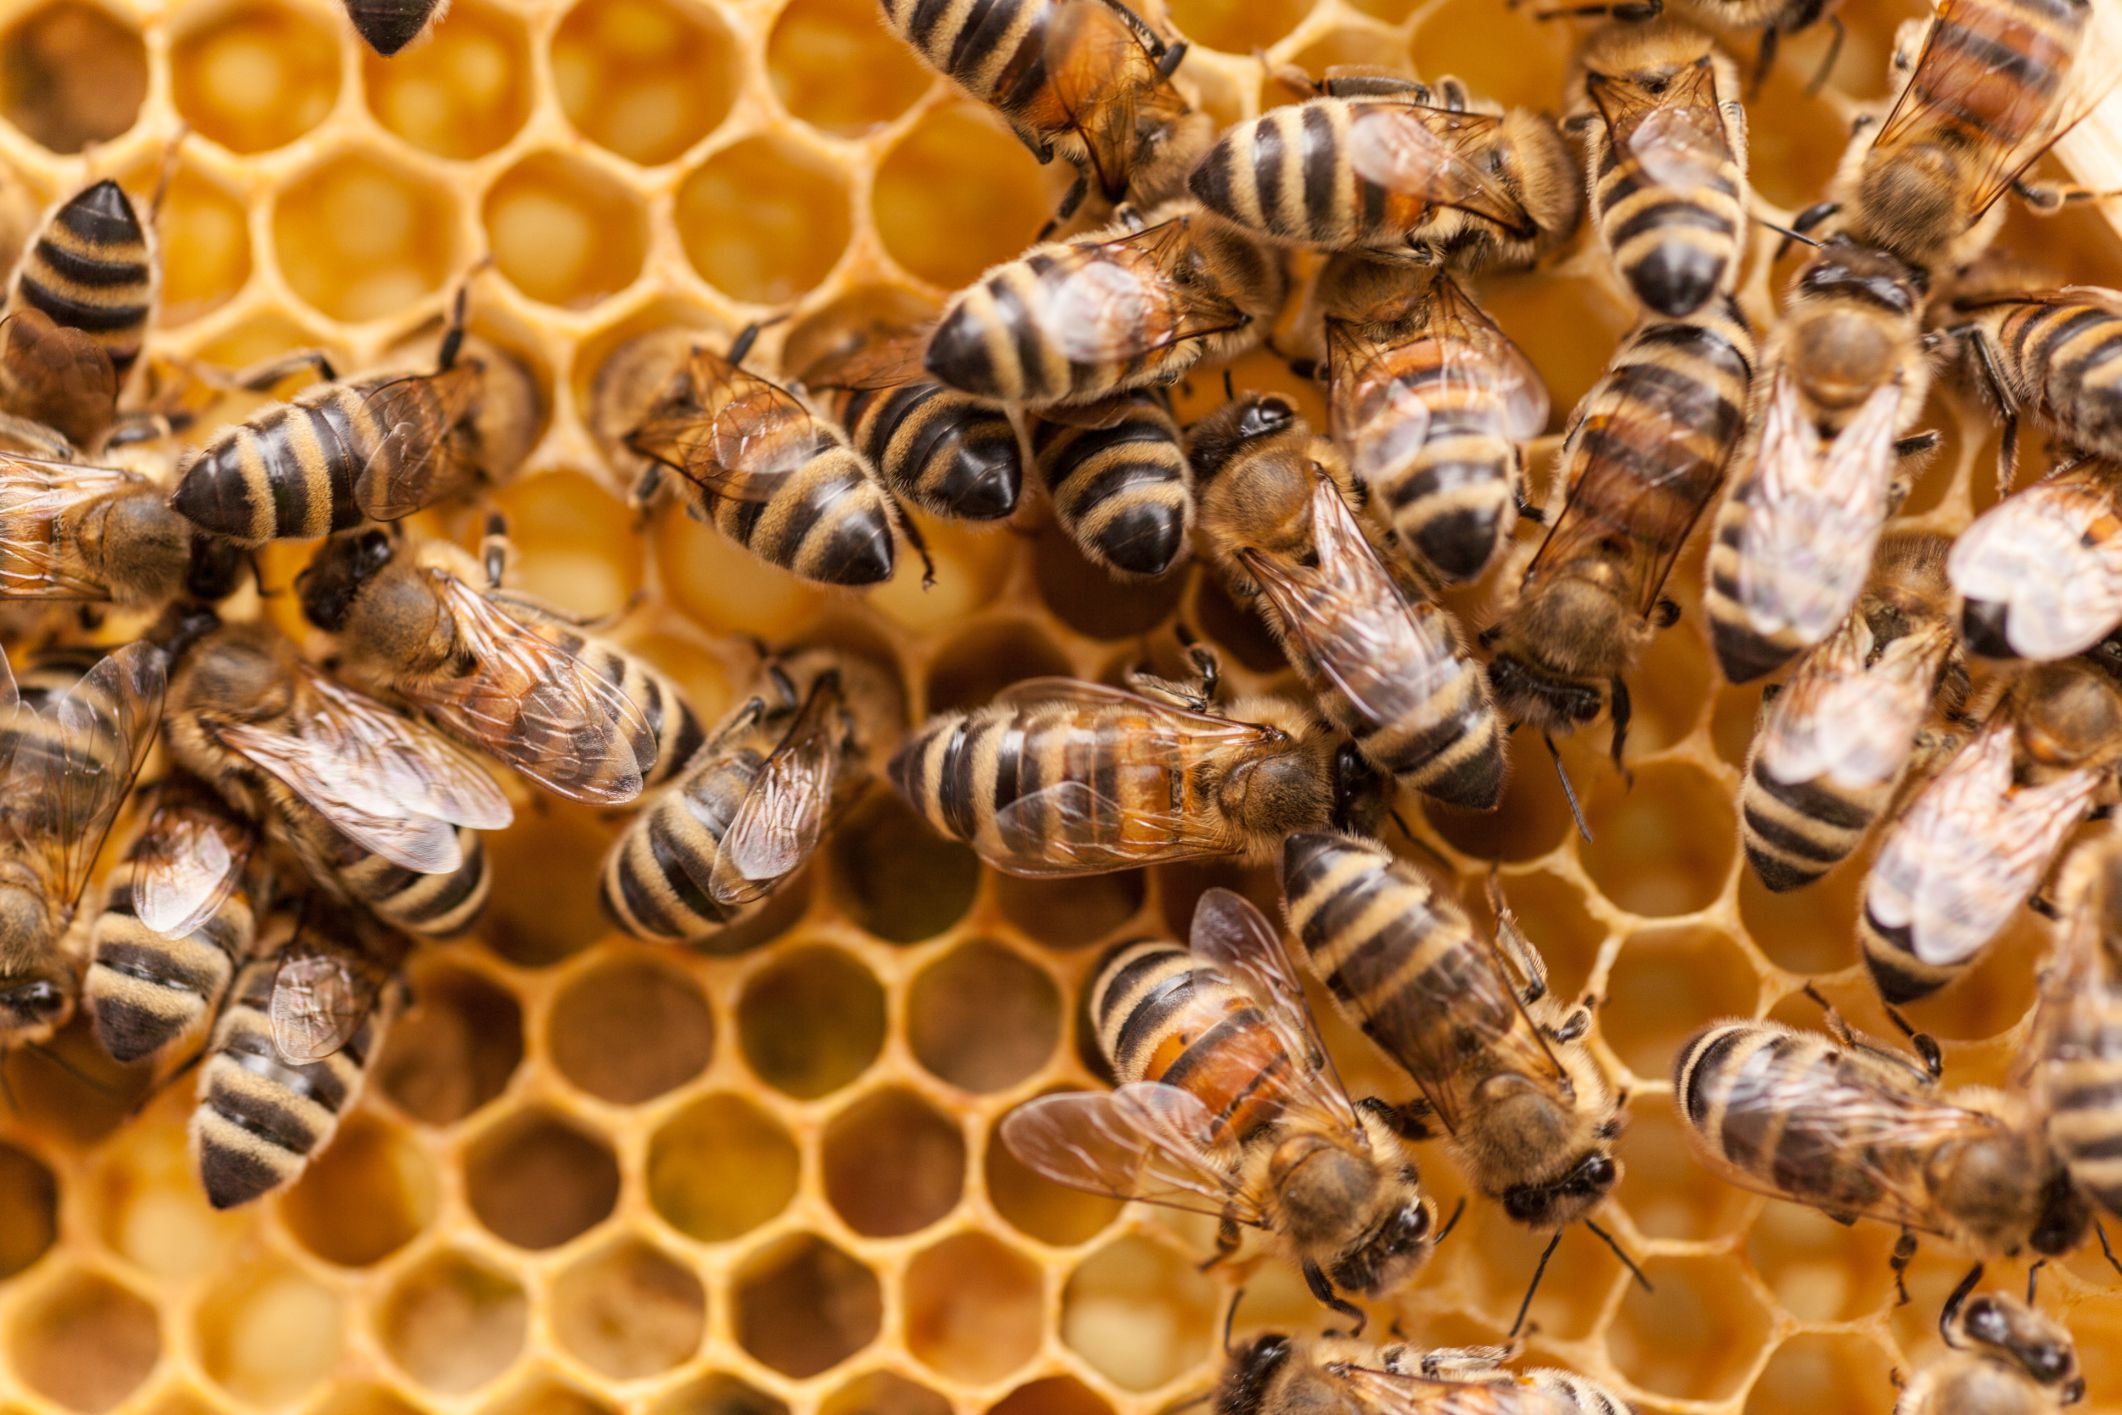 10 fascinating facts about honey bees